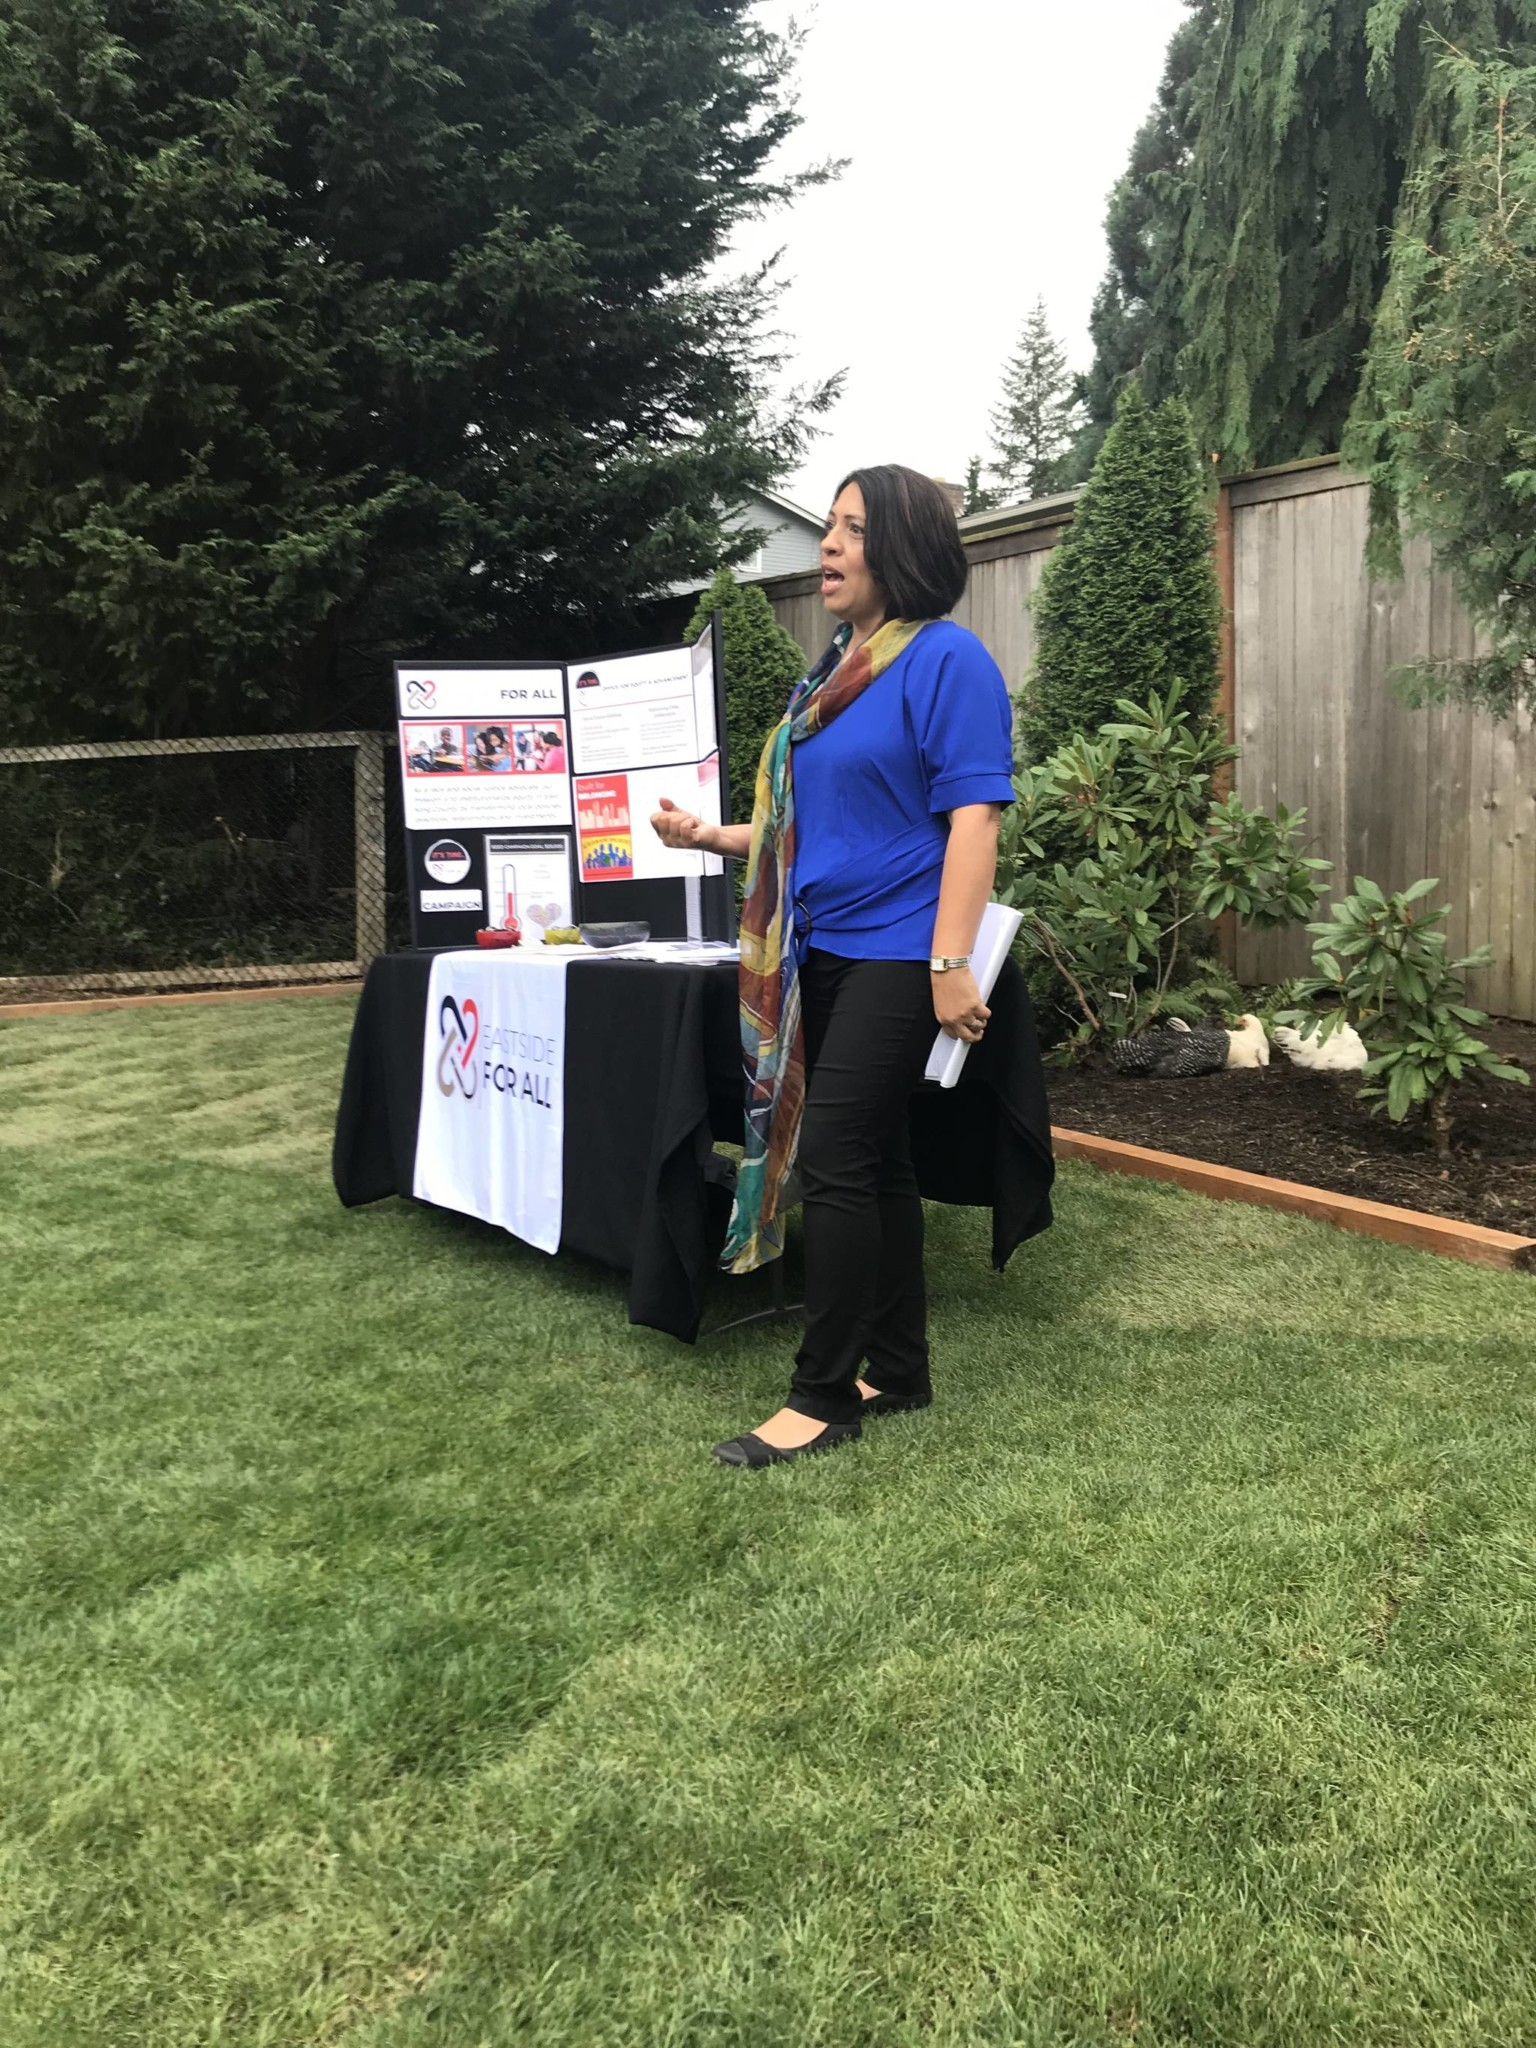 Debbie Lacy speaks at Introducing Eastisde for All Summer Social in Bellevue on September 7, 2019